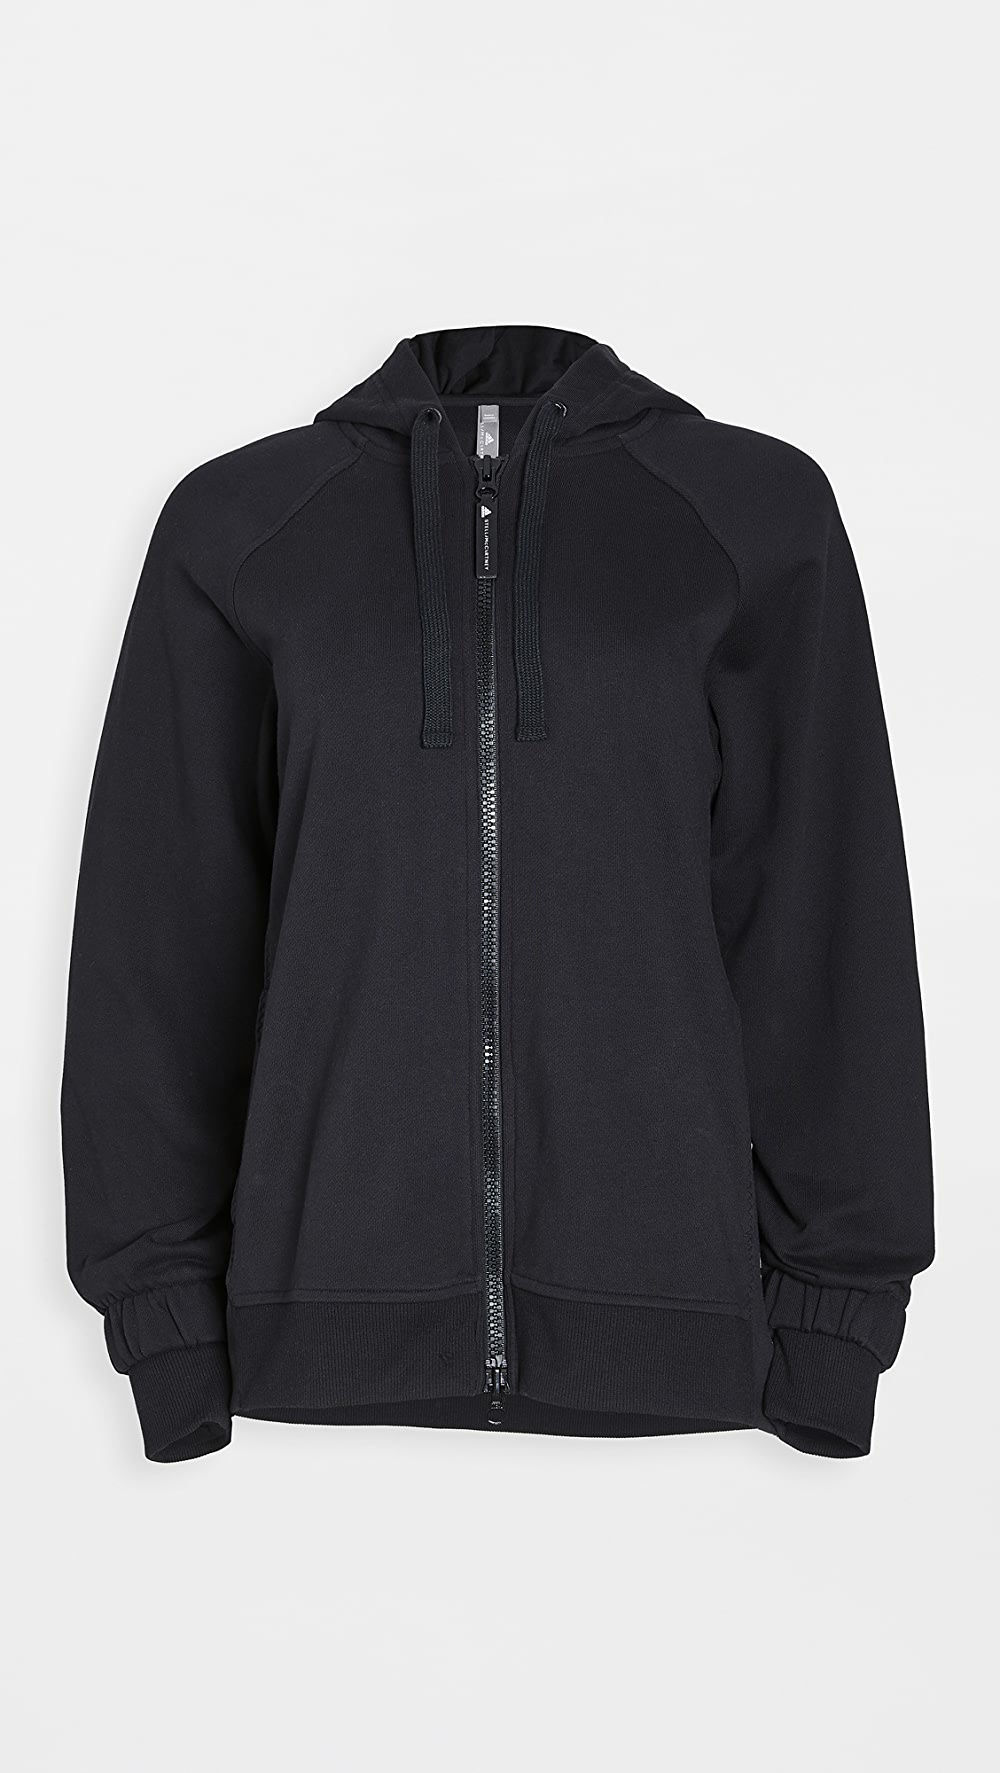 Collection Here Adidas By Stella Mccartney - Essential Hoodie Luxuriant In Design